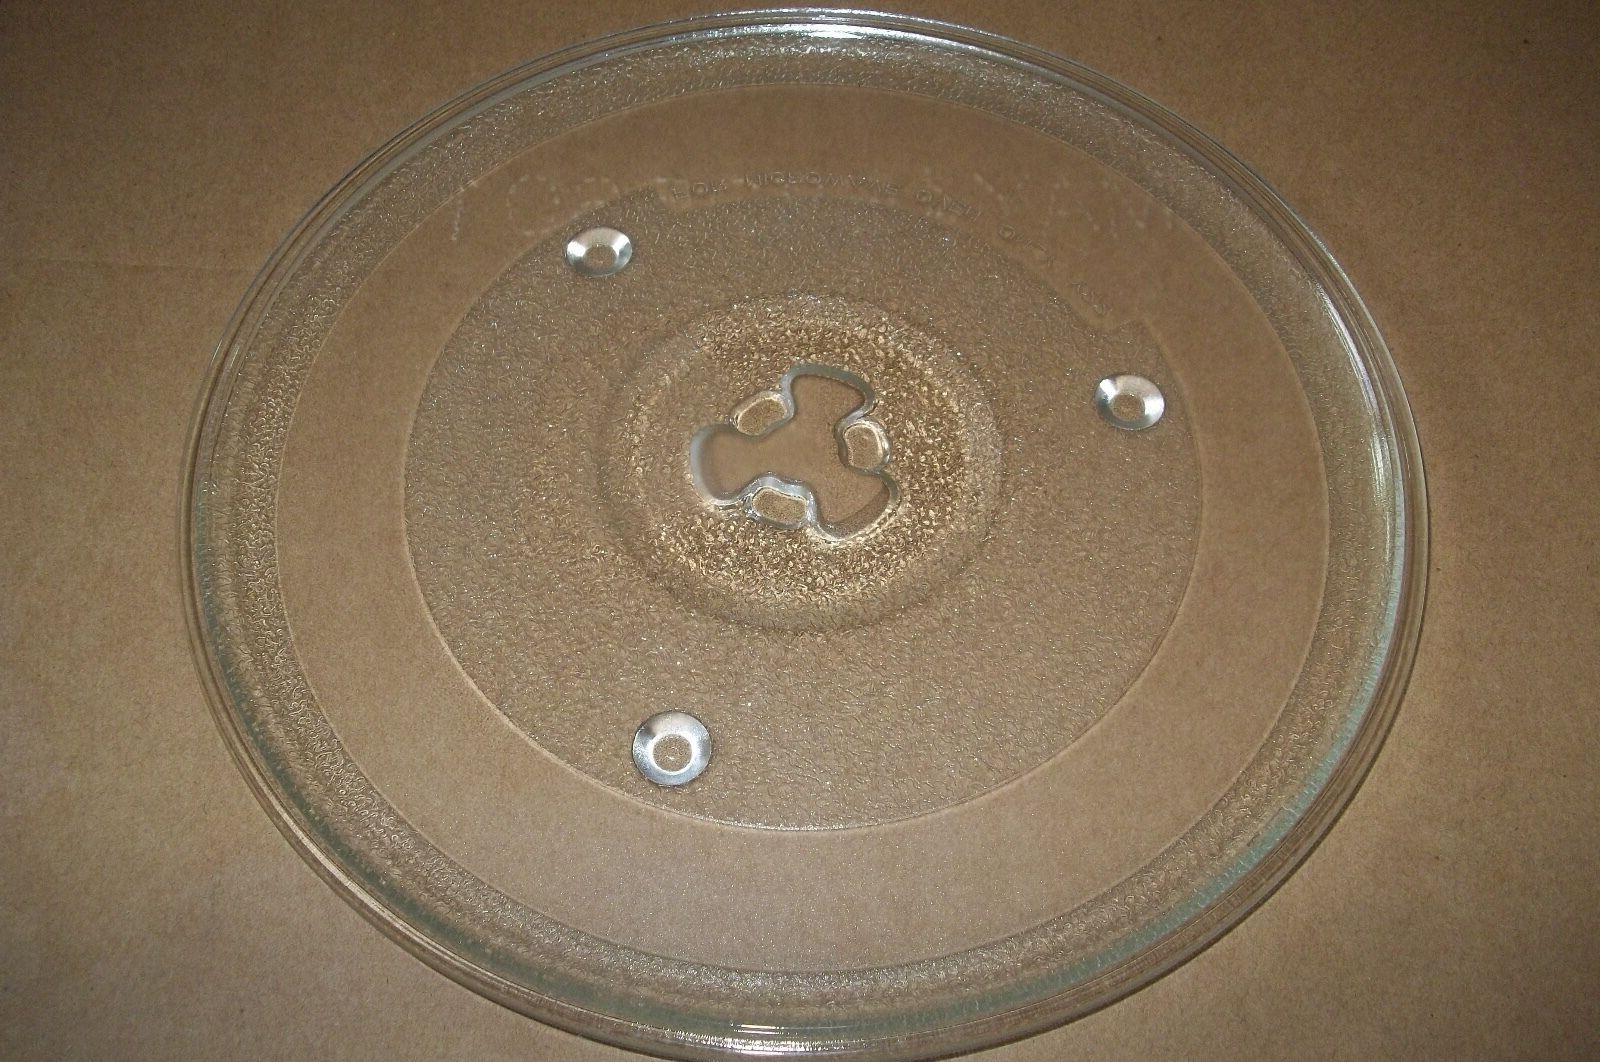 New Panasonic Microwave Turntable Plate Part#30QBP4162